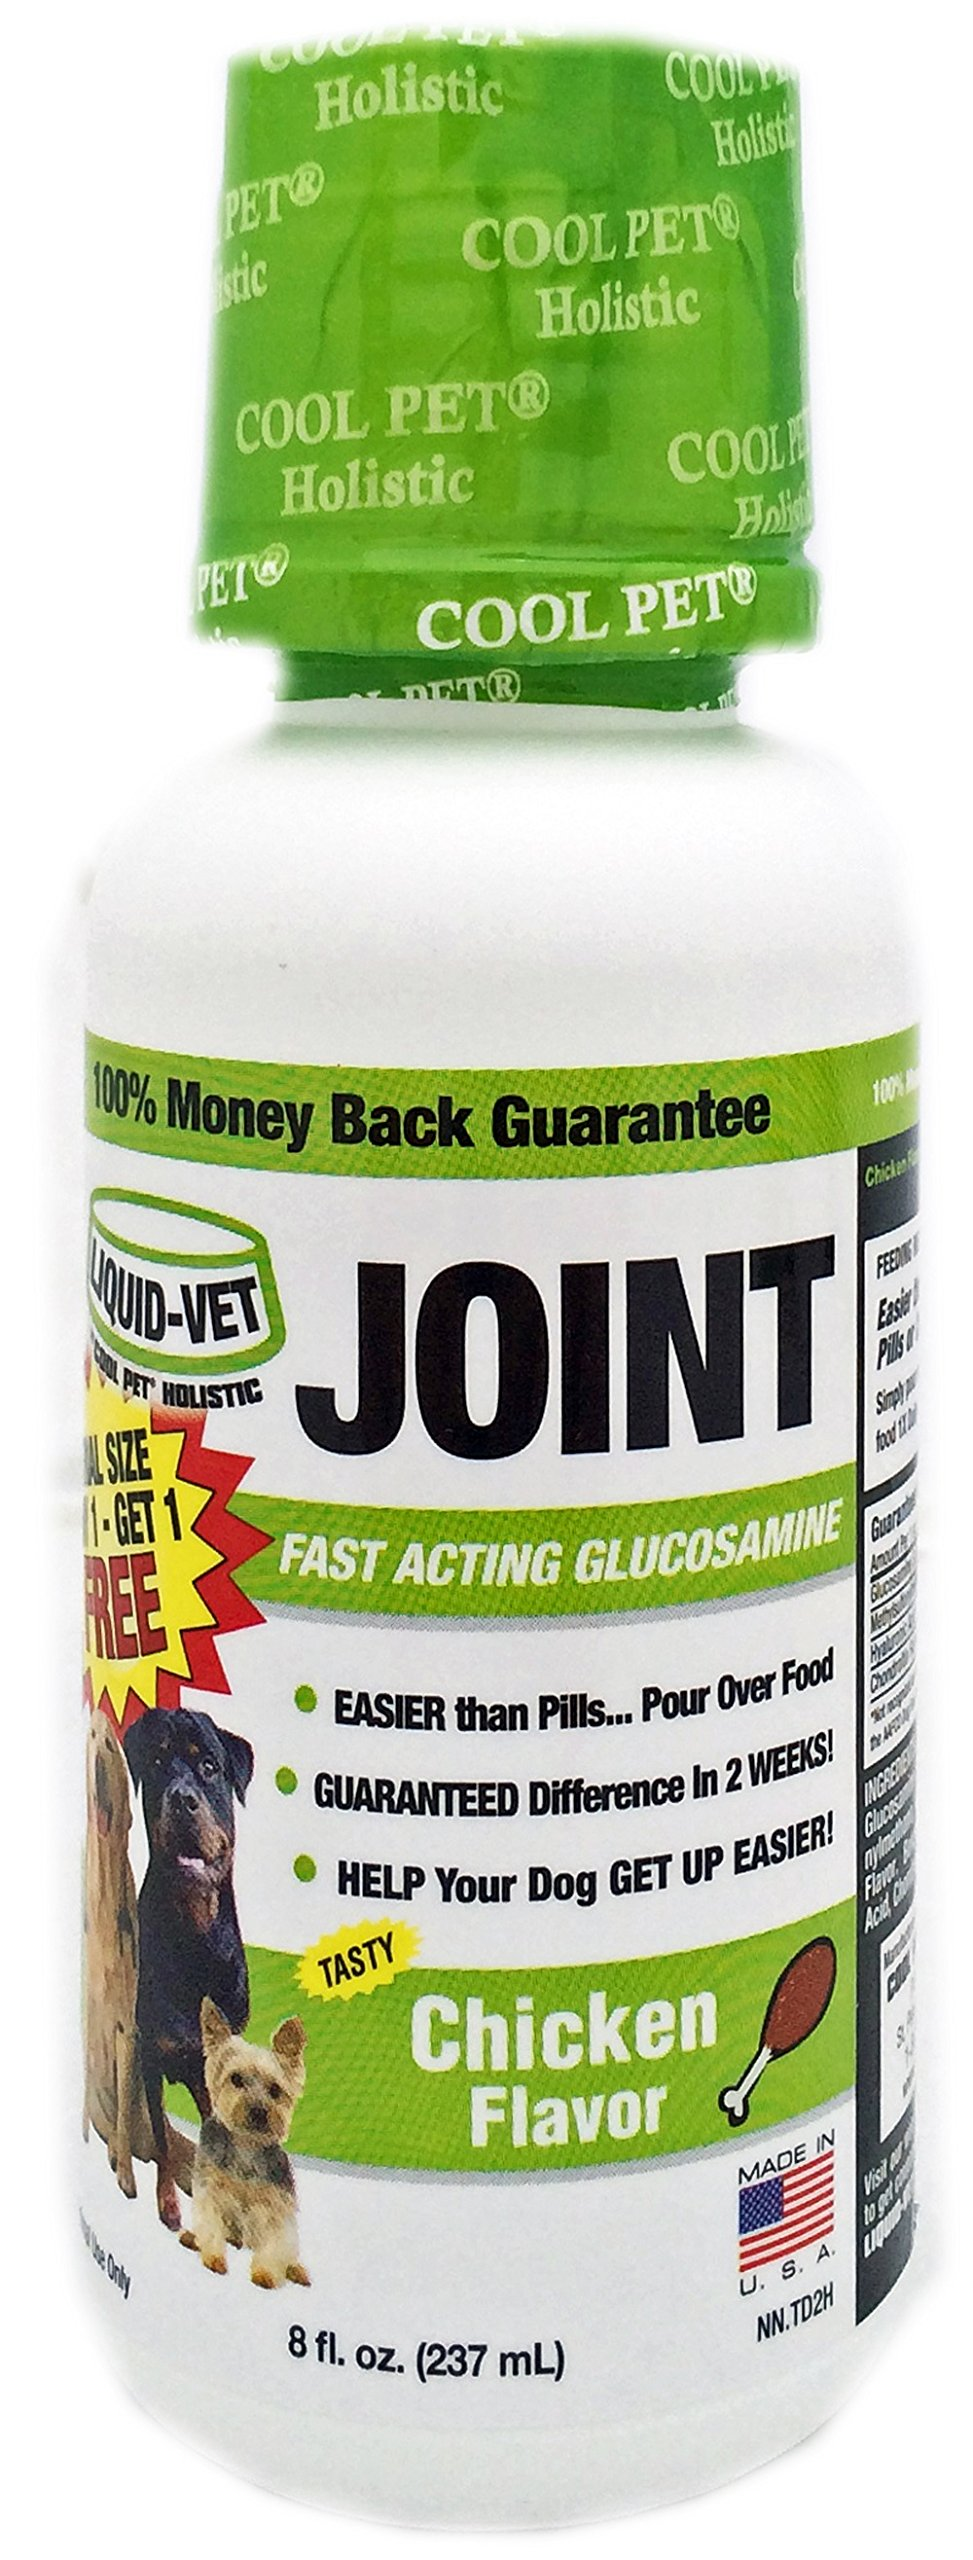 Liquid-Vet Dog Joint Formula – Fast Acting Glucosamine for Joint Aid in Canines – Chicken Flavor – Trial Size, Buy 1 Get 1 Free – 8 Fluid Ounces